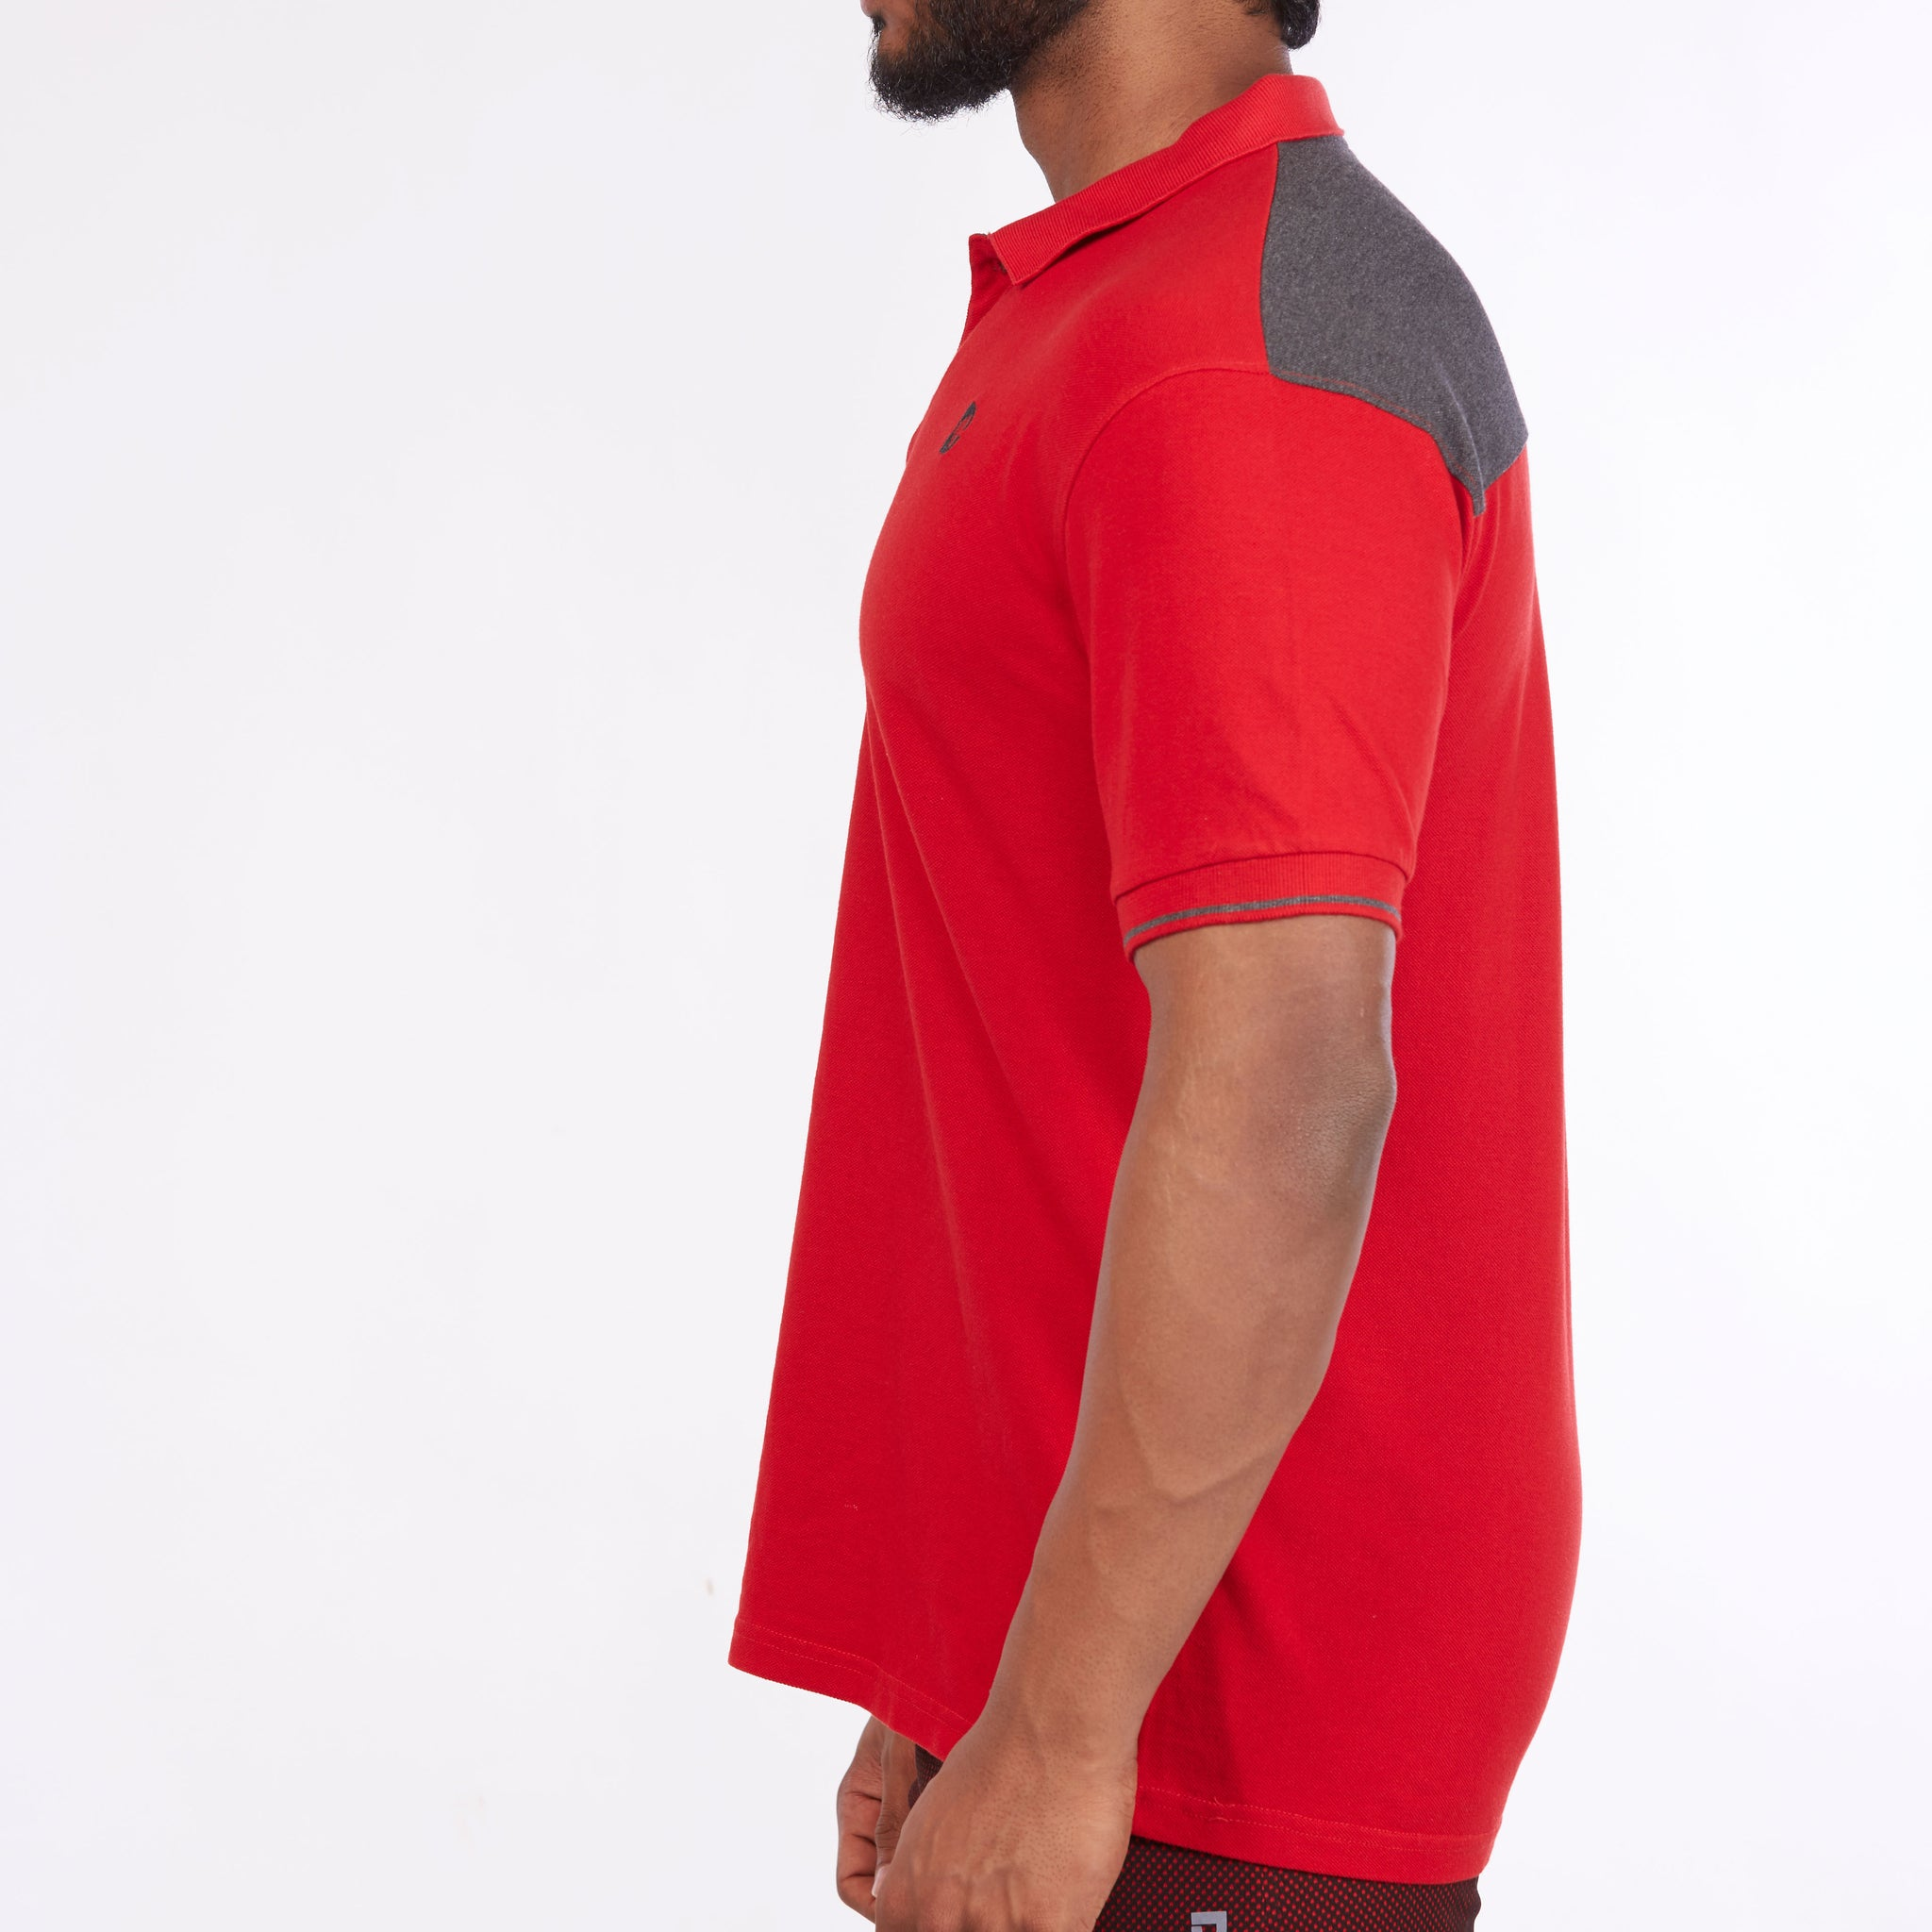 DB072 Collar Contrast Cut & Sew Polo Tees - Red